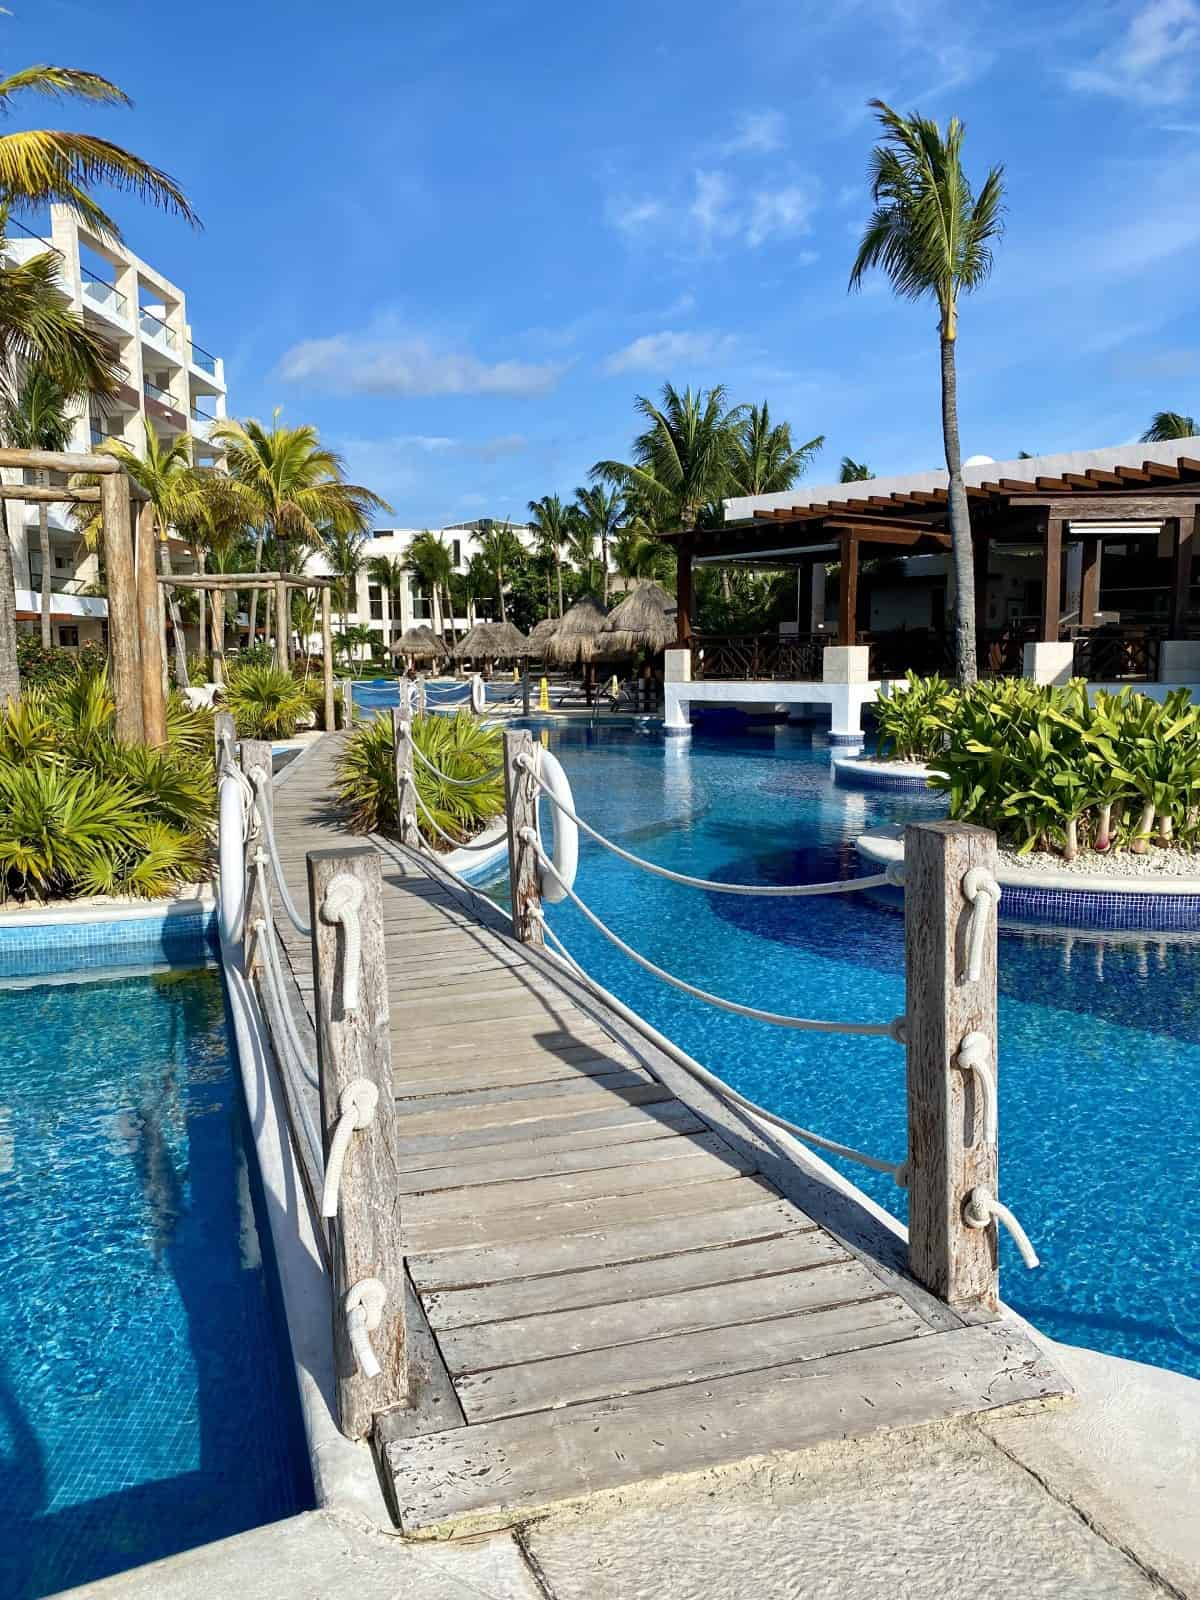 A Detailed Honest Review of Cancun's Excellence Playa Mujeres Resort   After staying 5 days I wanted to write a thorough Excellence Playa Mujeres review for this Cancun Mexico resort, to talk about the rooms, resort grounds, pools, beach, service, activities, & more. Includes whether Excellence Club is worth it at EPM!